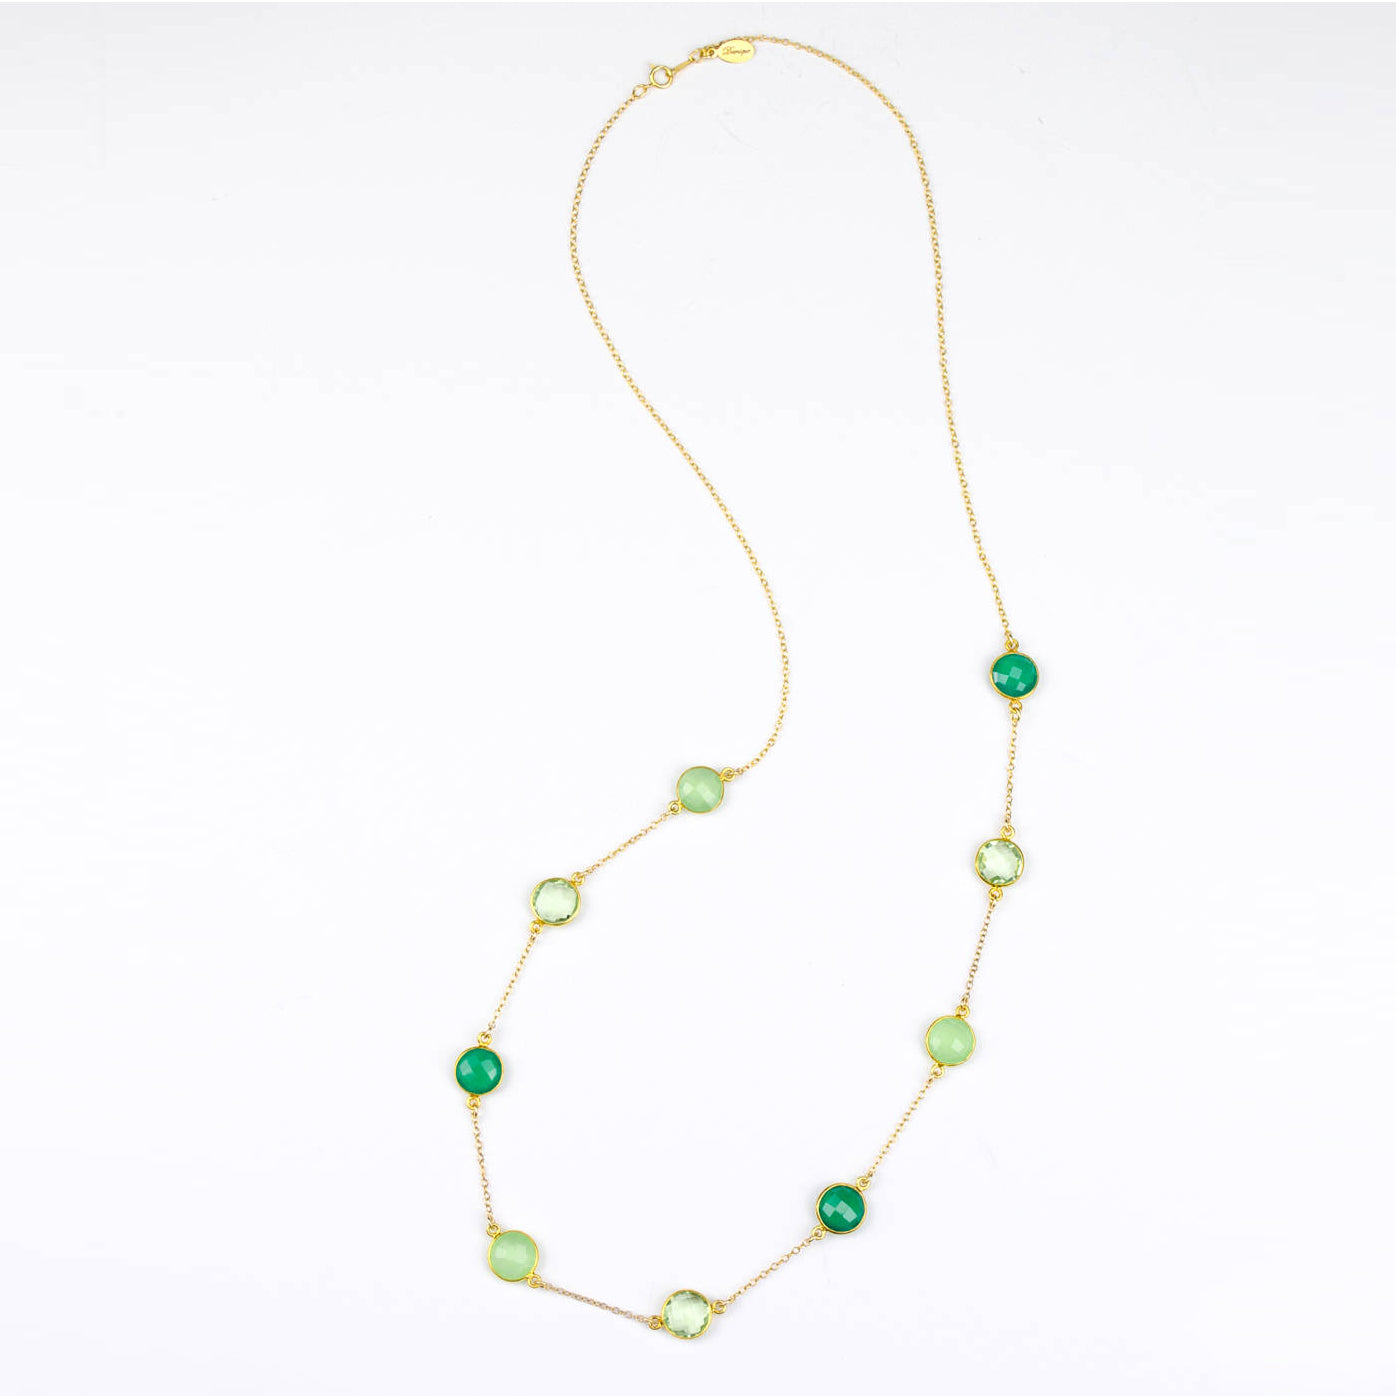 jivaana onyx paisley website buy green pop mohina at online product jewellery by necklace longnecklace